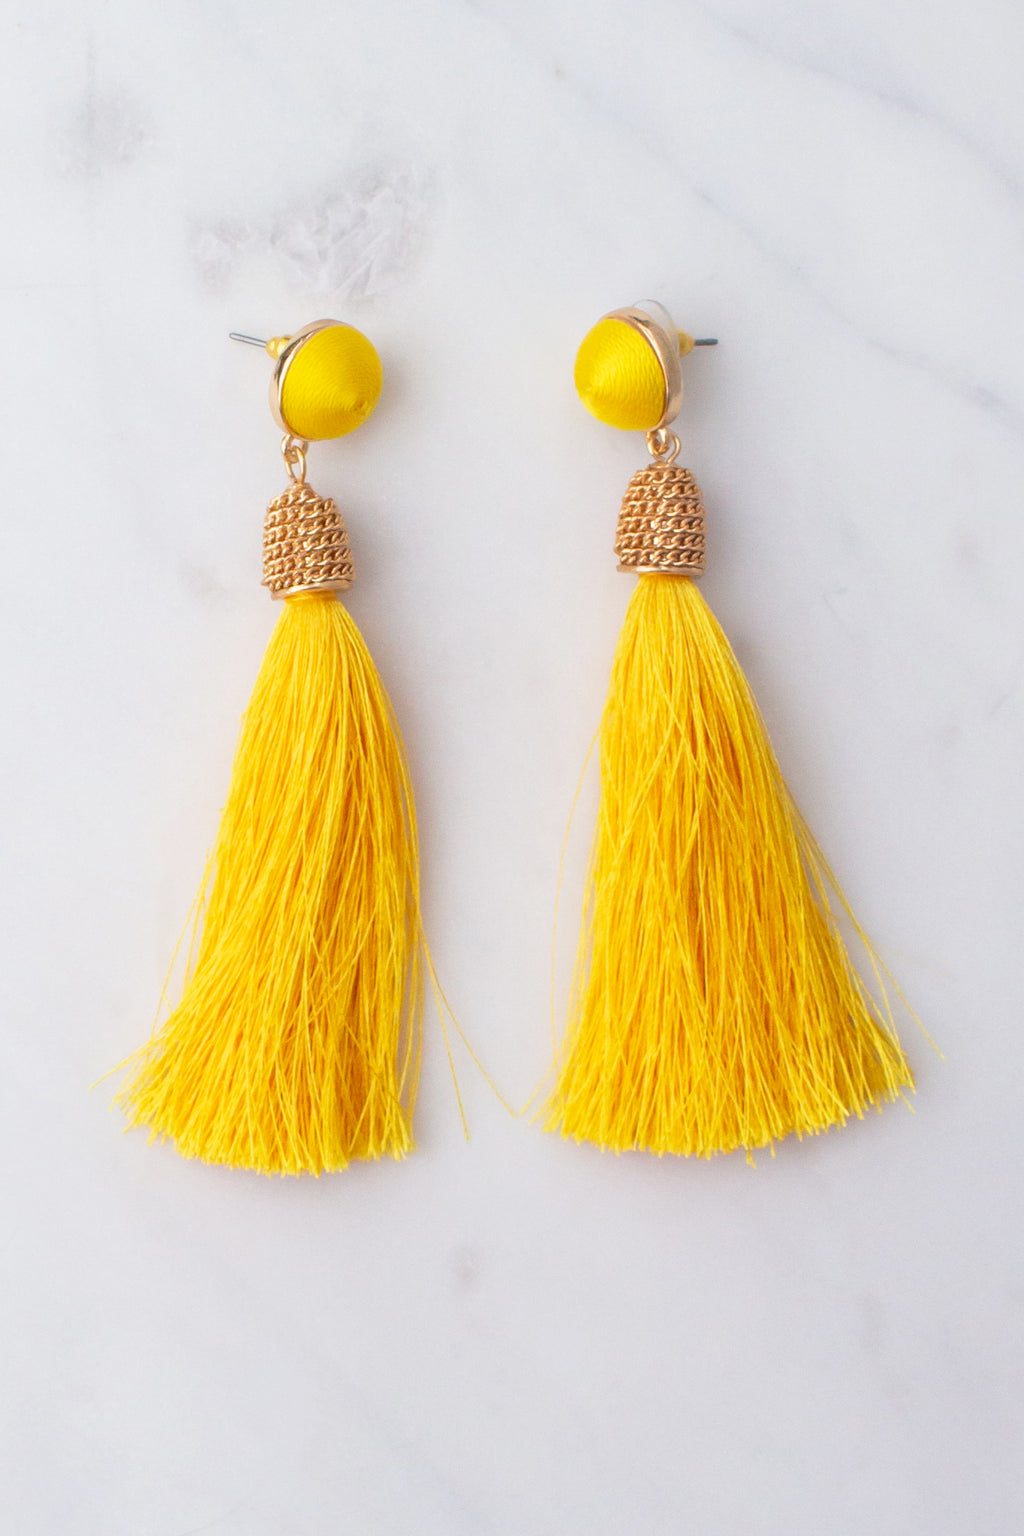 cute yellow tassel earrings, trendy yellow tassel earrings, gold earrings, boutique tassel earrings, fashion tassel earrings